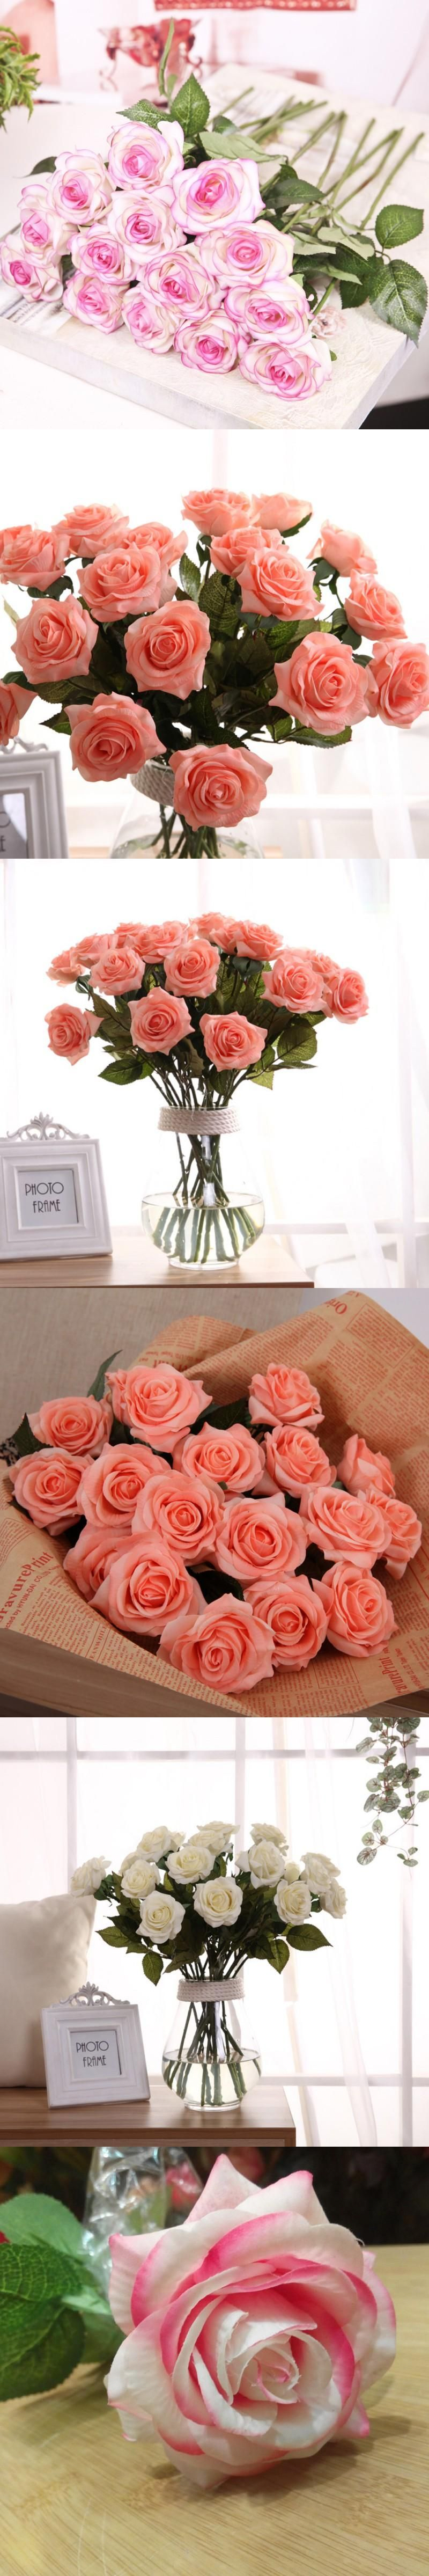 New artificial silk latex rose flowers wedding bouquet bridal new artificial silk latex rose flowers wedding bouquet bridal decoration bundles real touch flower bouquets realistic junglespirit Images